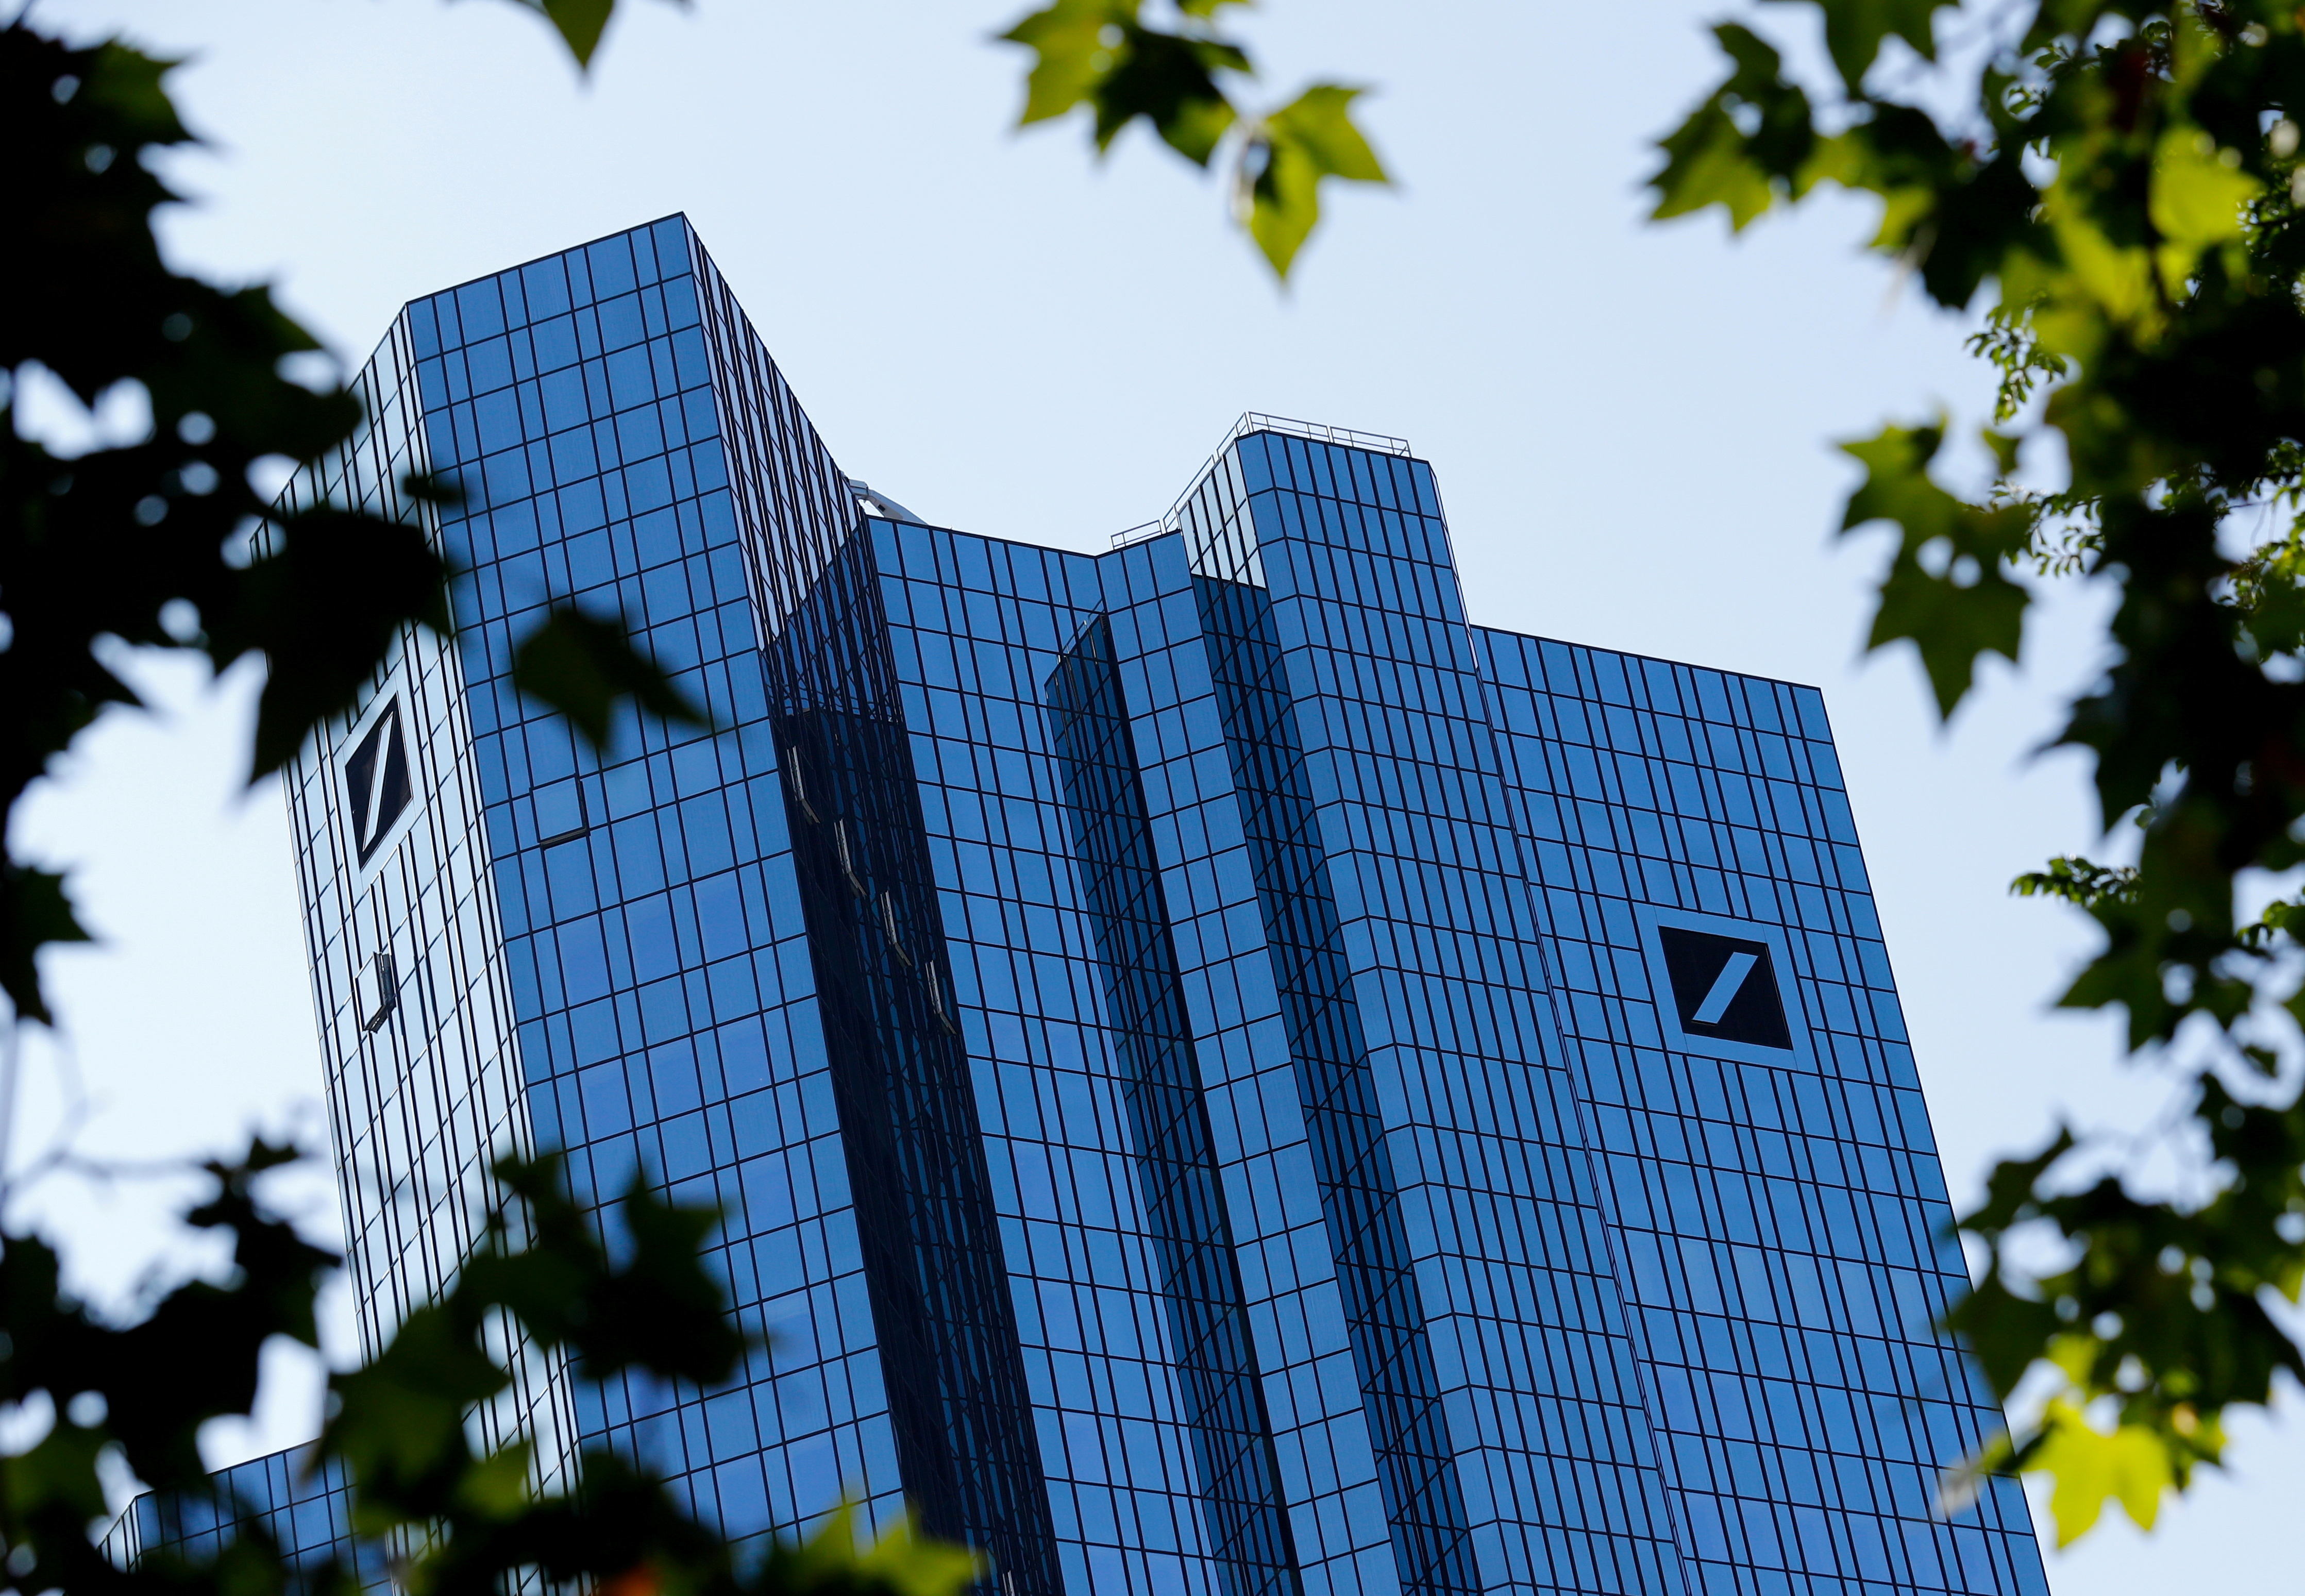 The headquarters of Germany's Deutsche Bank are pictured in Frankfurt, Germany, September 21, 2020. REUTERS/Ralph Orlowski